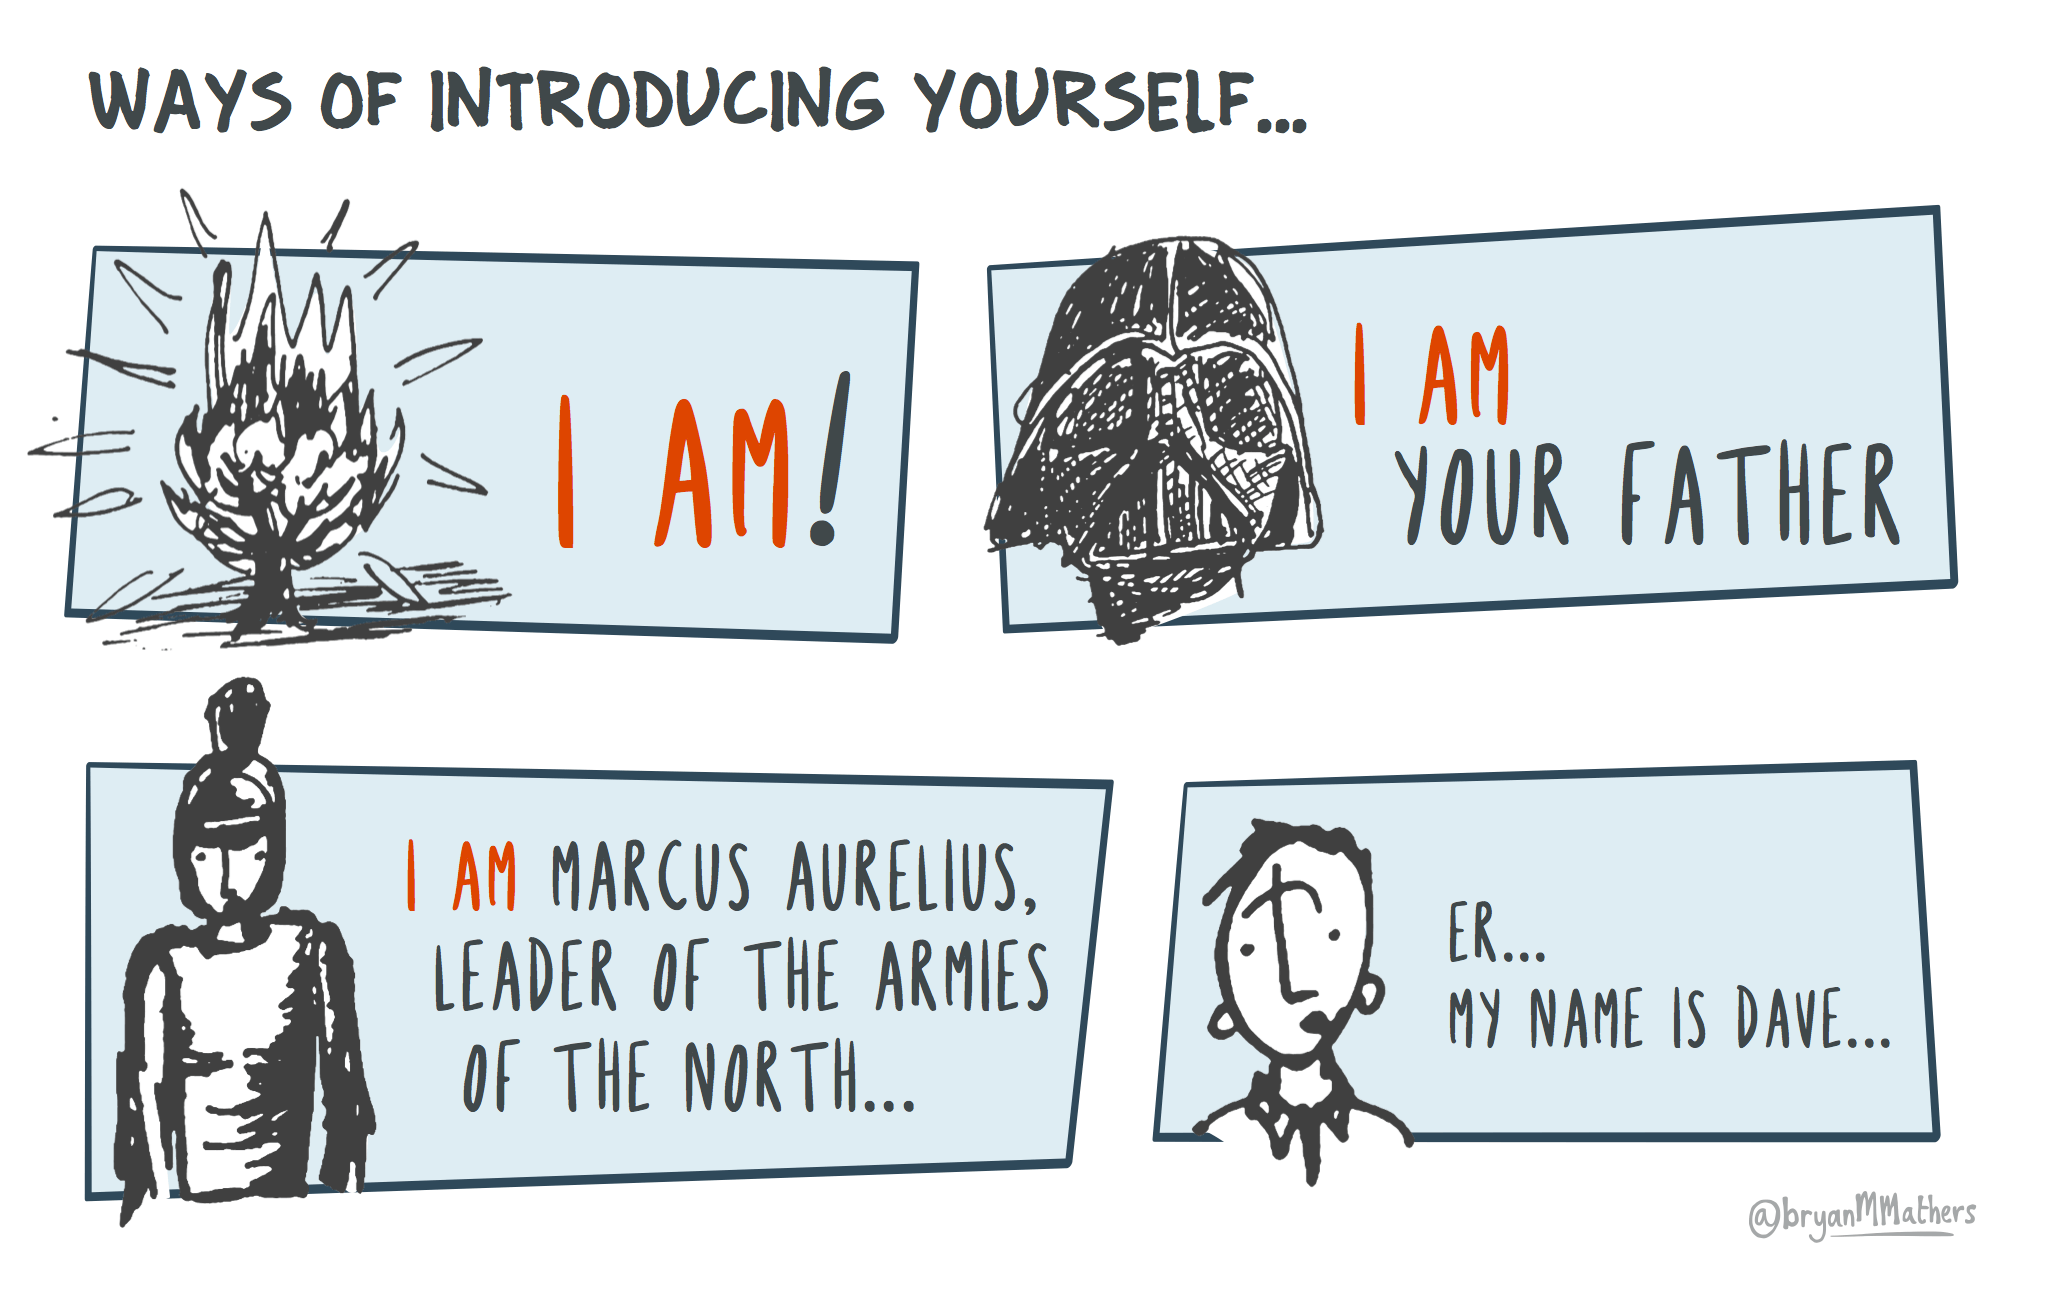 Ways of introducing yourself…